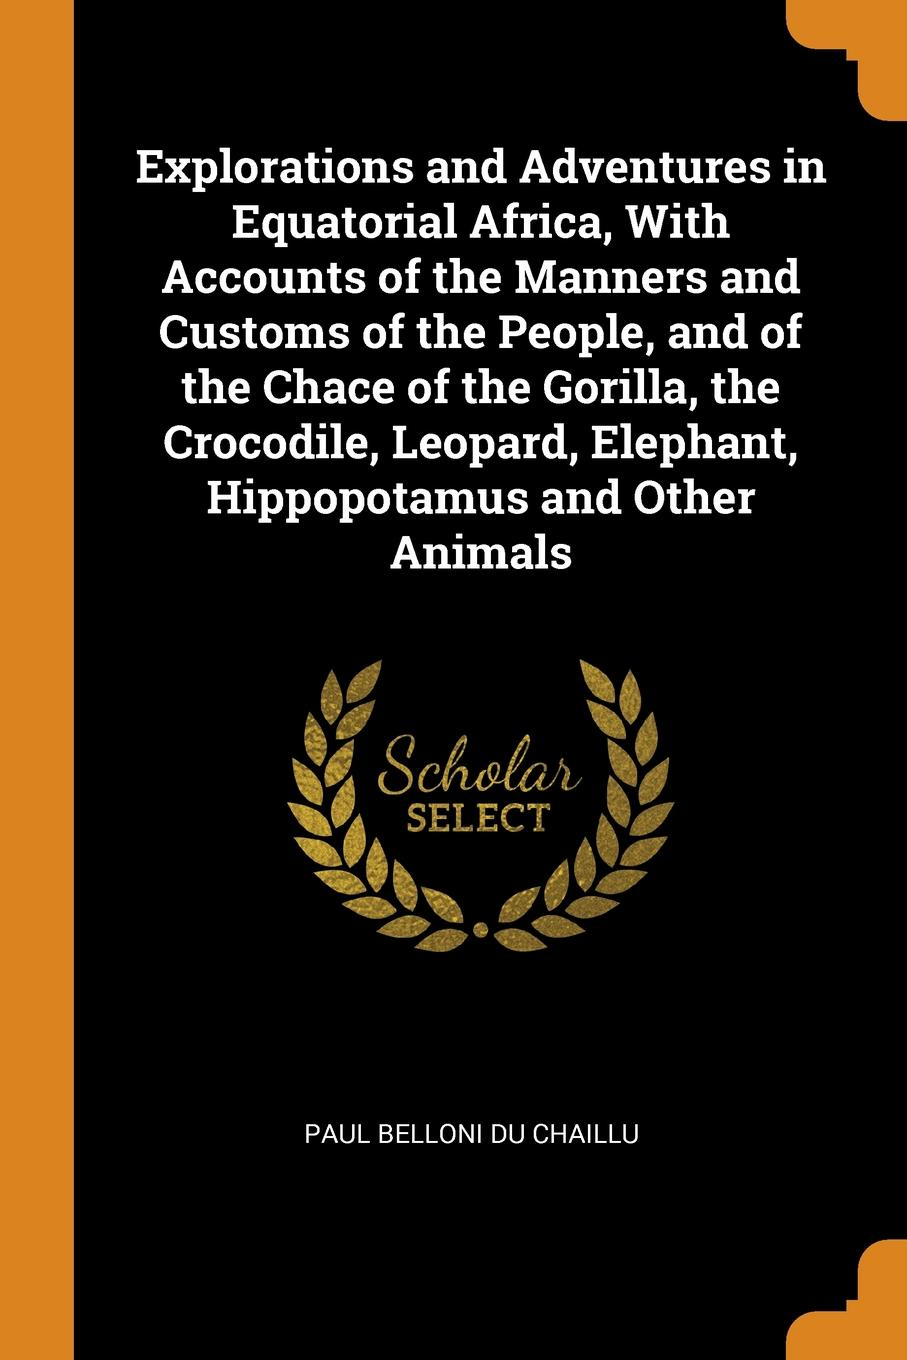 Paul Belloni Du Chaillu Explorations and Adventures in Equatorial Africa, With Accounts of the Manners and Customs of the People, and of the Chace of the Gorilla, the Crocodile, Leopard, Elephant, Hippopotamus and Other Animals du chaillu paul belloni the country of the dwarfs